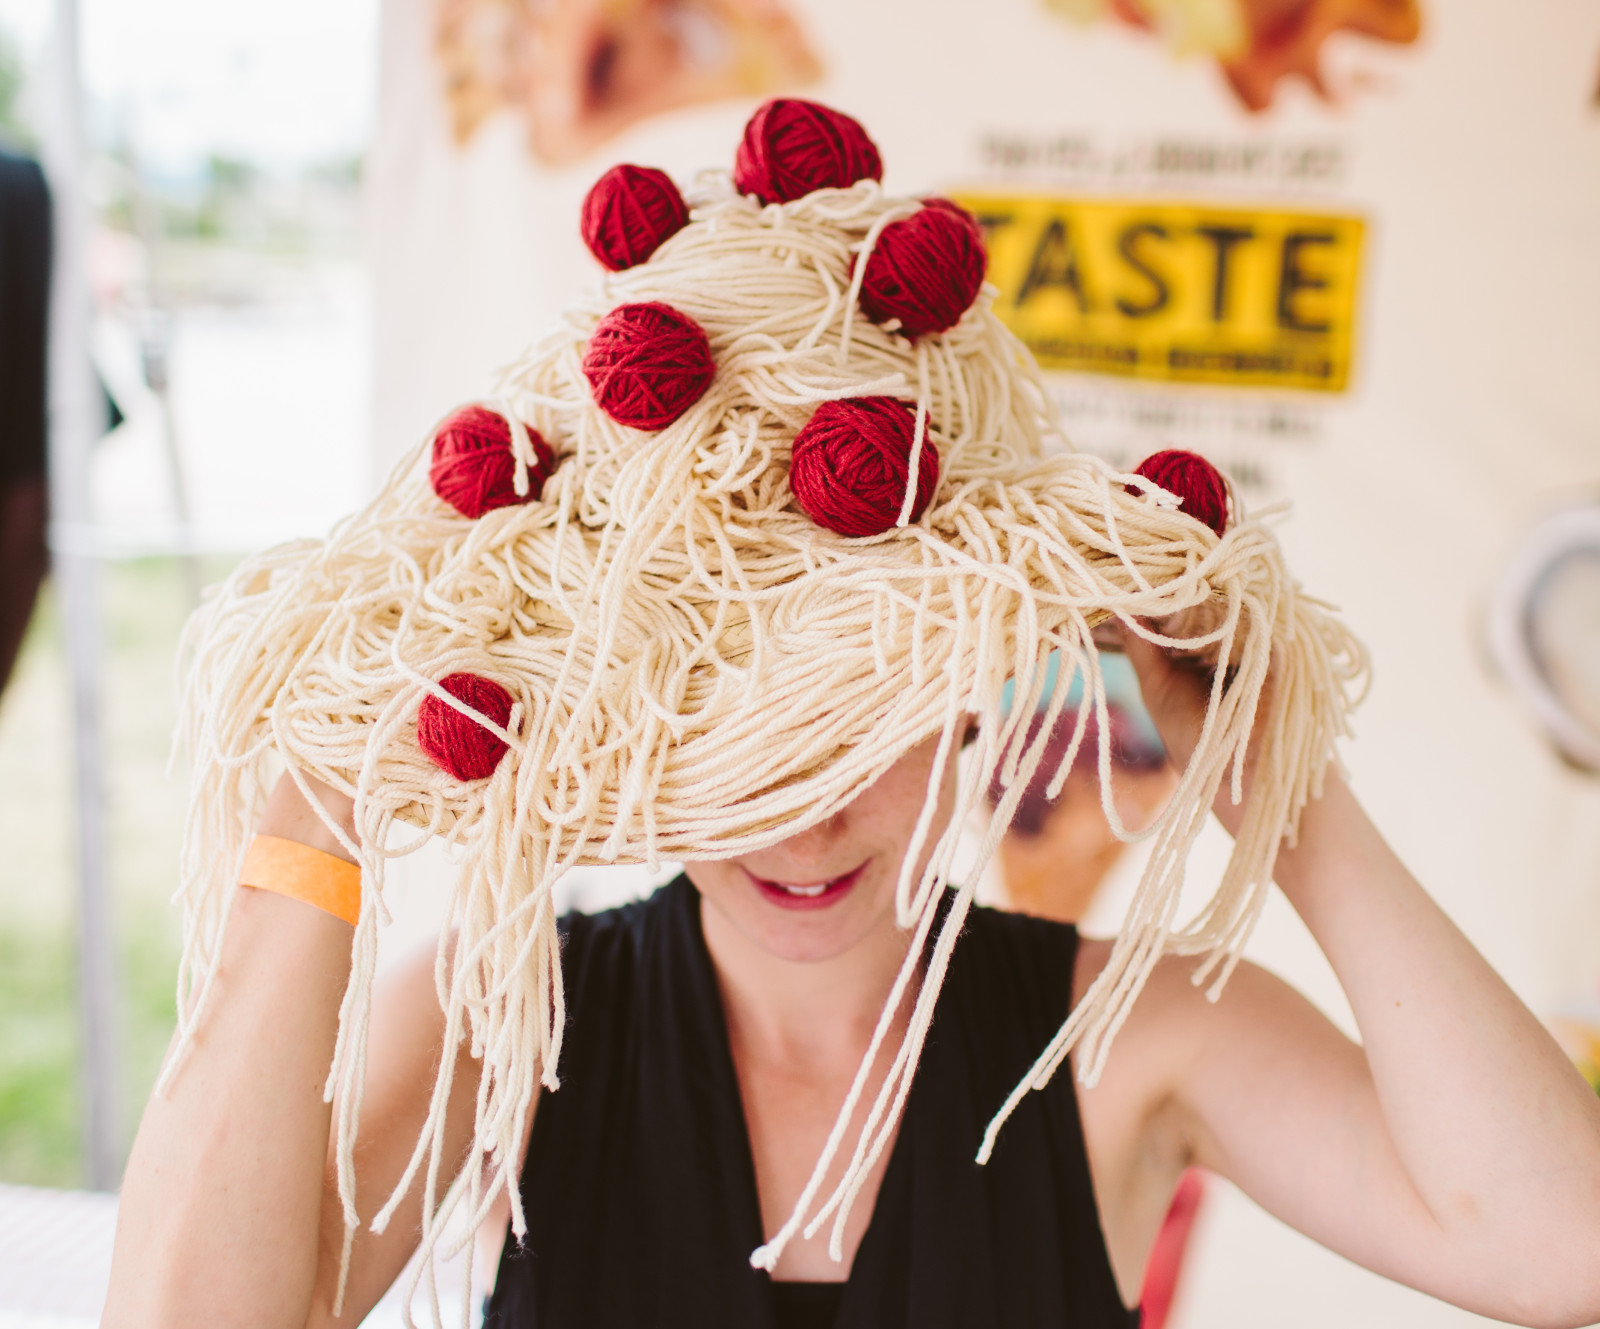 Fun with Food! Nice Think's photobooth from Taste WG 2015